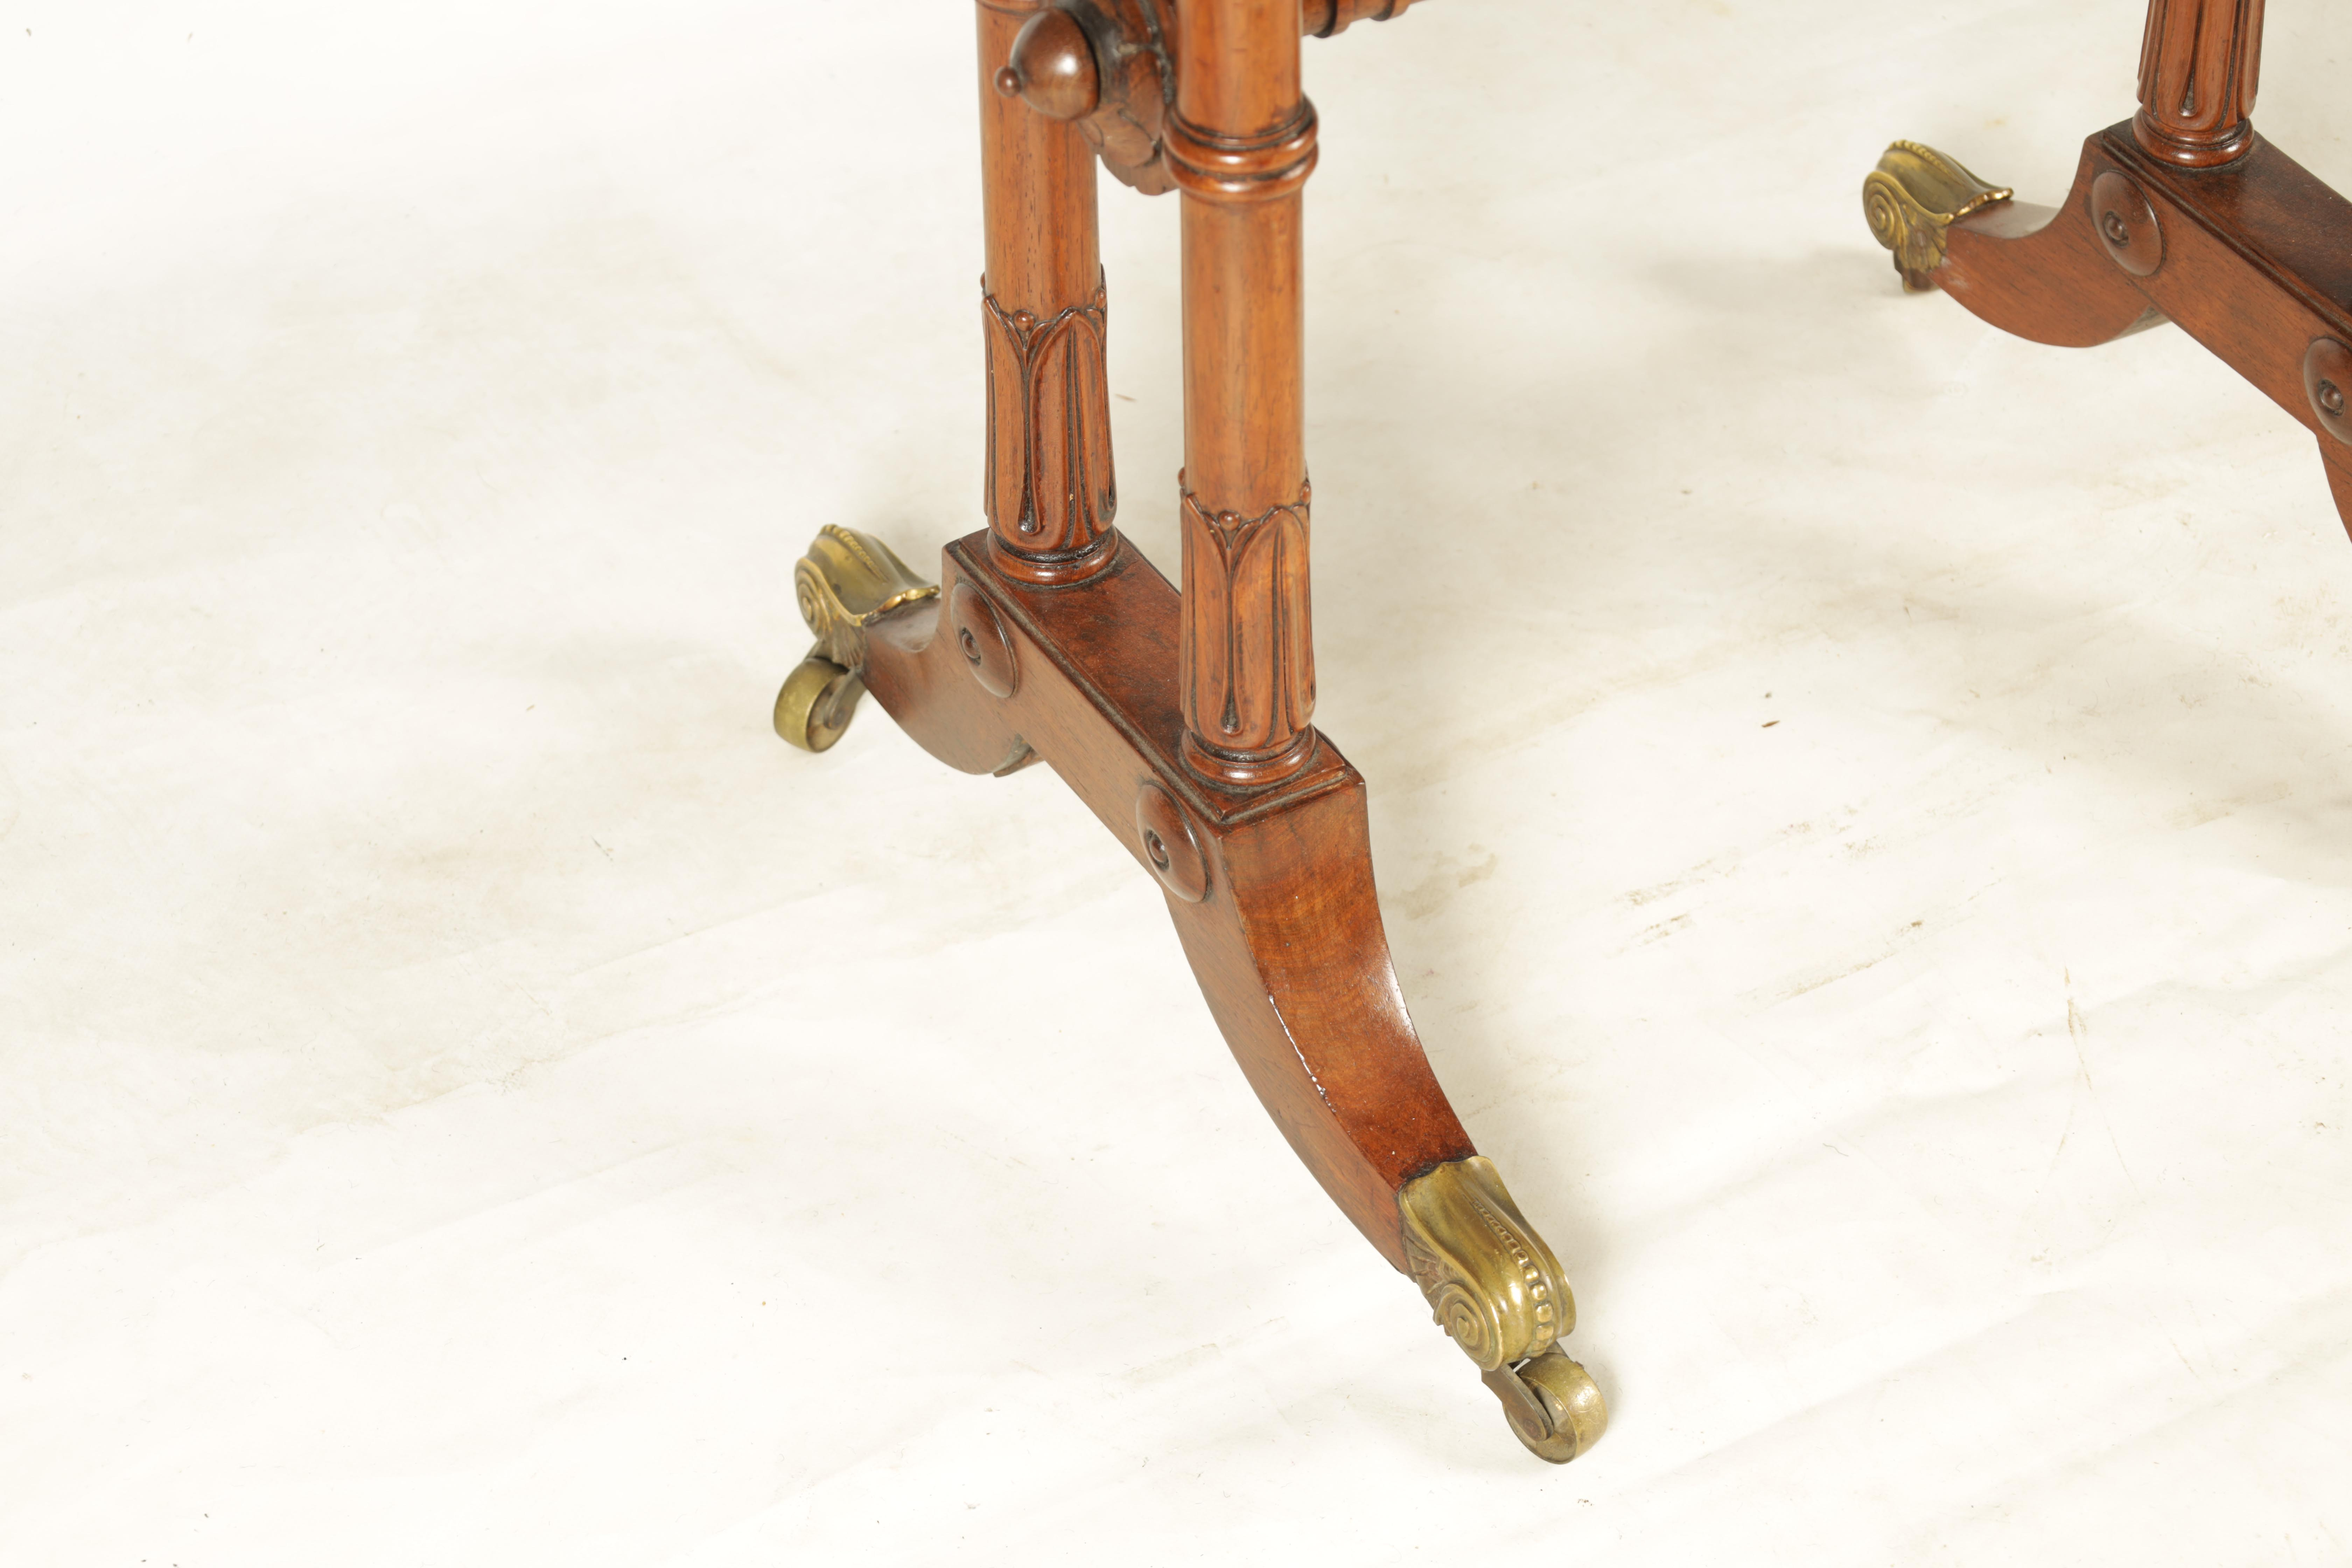 A REGENCY FIGURED ROSEWOOD CARD TABLE IN THE MANNER OF T & G SEDDON with revolving top revealing a - Image 2 of 9